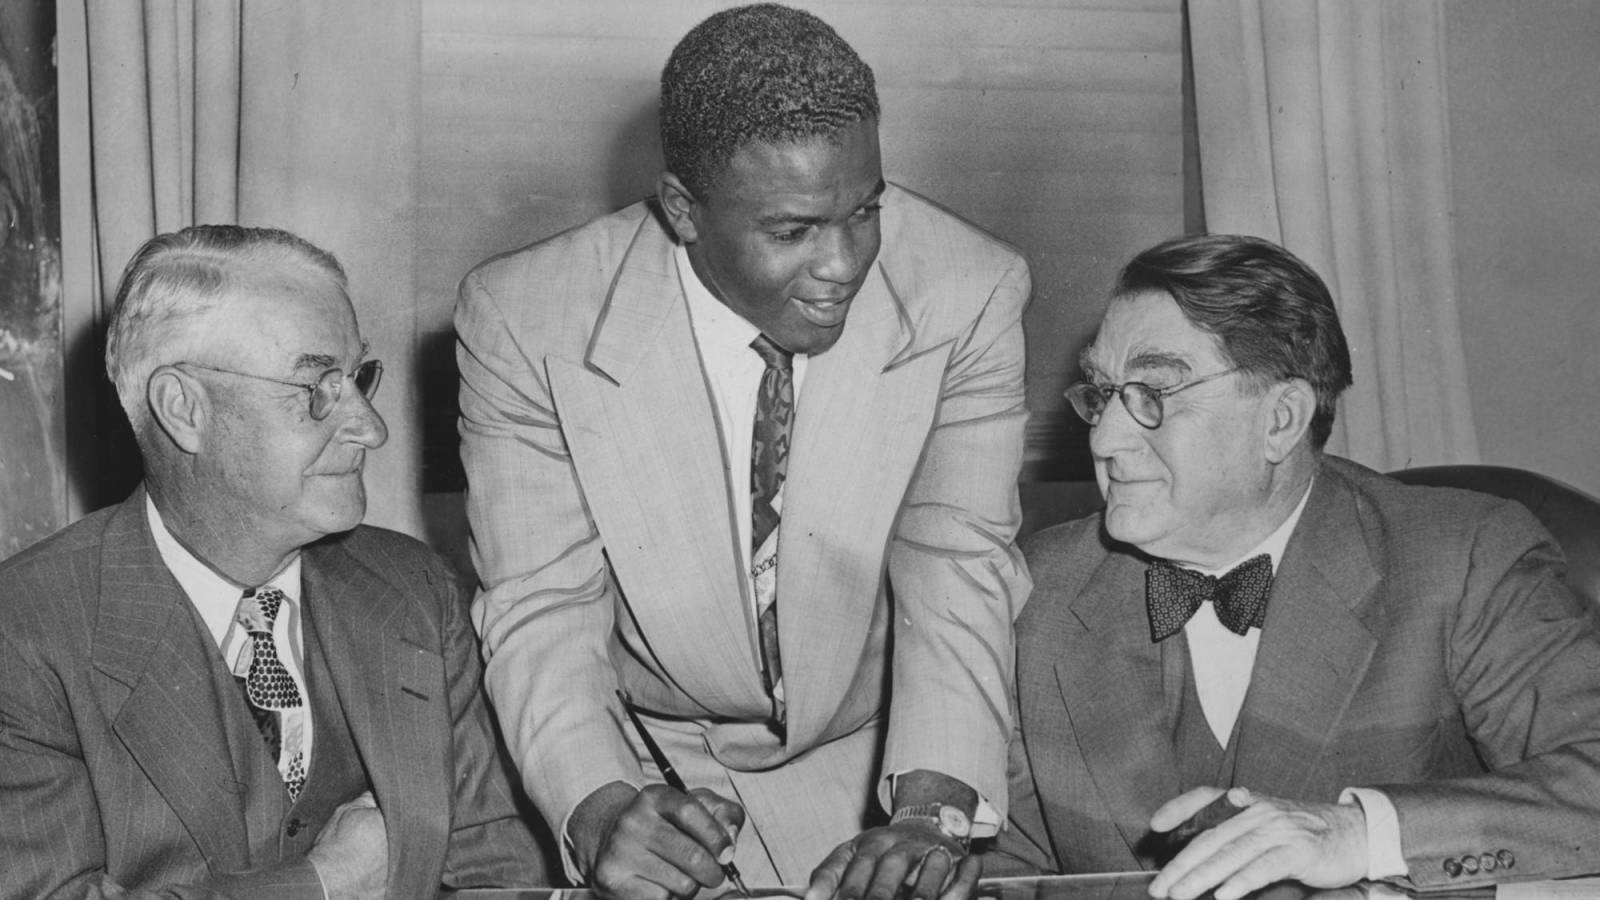 The most significant moments, figures and accomplishments in African-American sports history